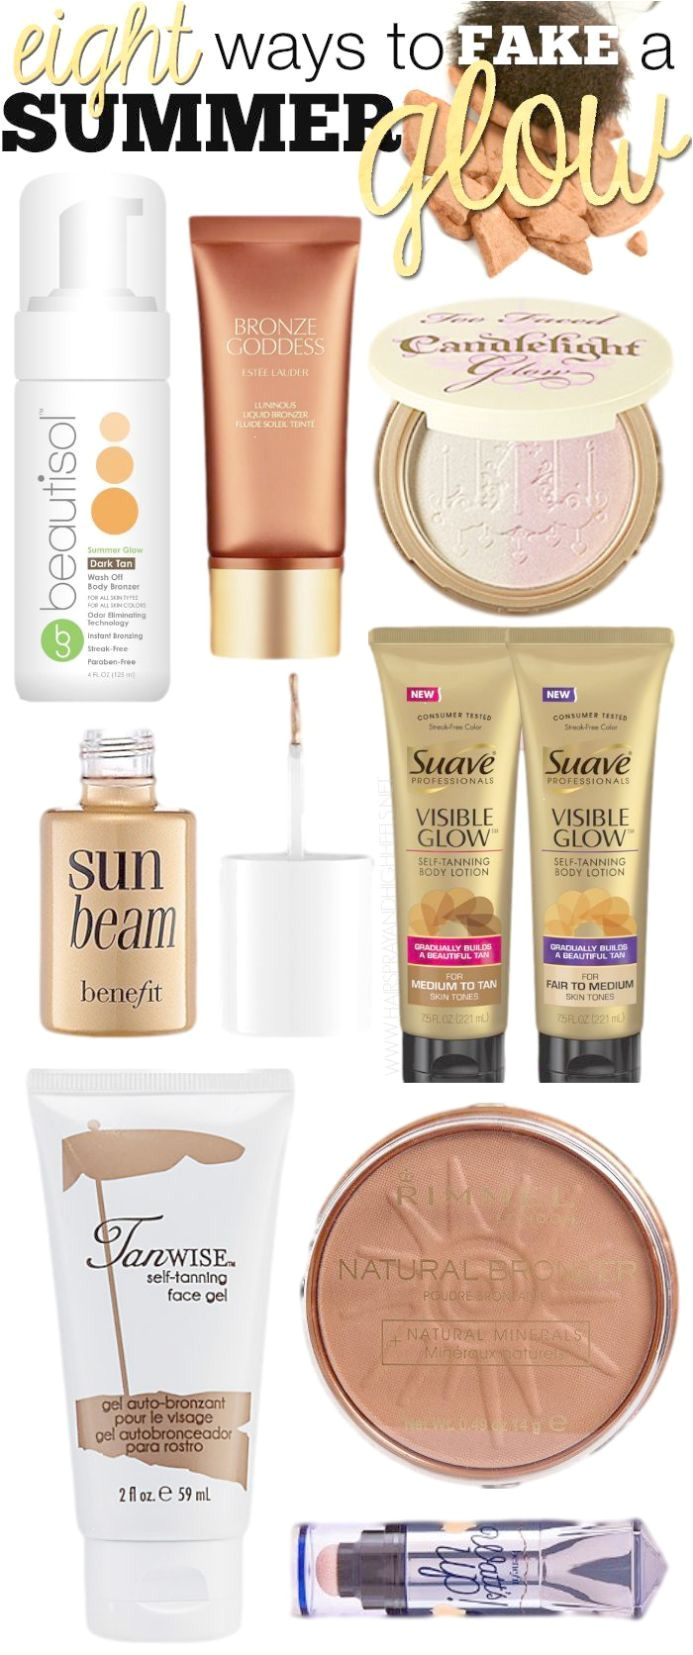 8 ways to fake a summer glow winter has been wreaking havoc well into spring around these parts its about time we give it the ol kick in the butt